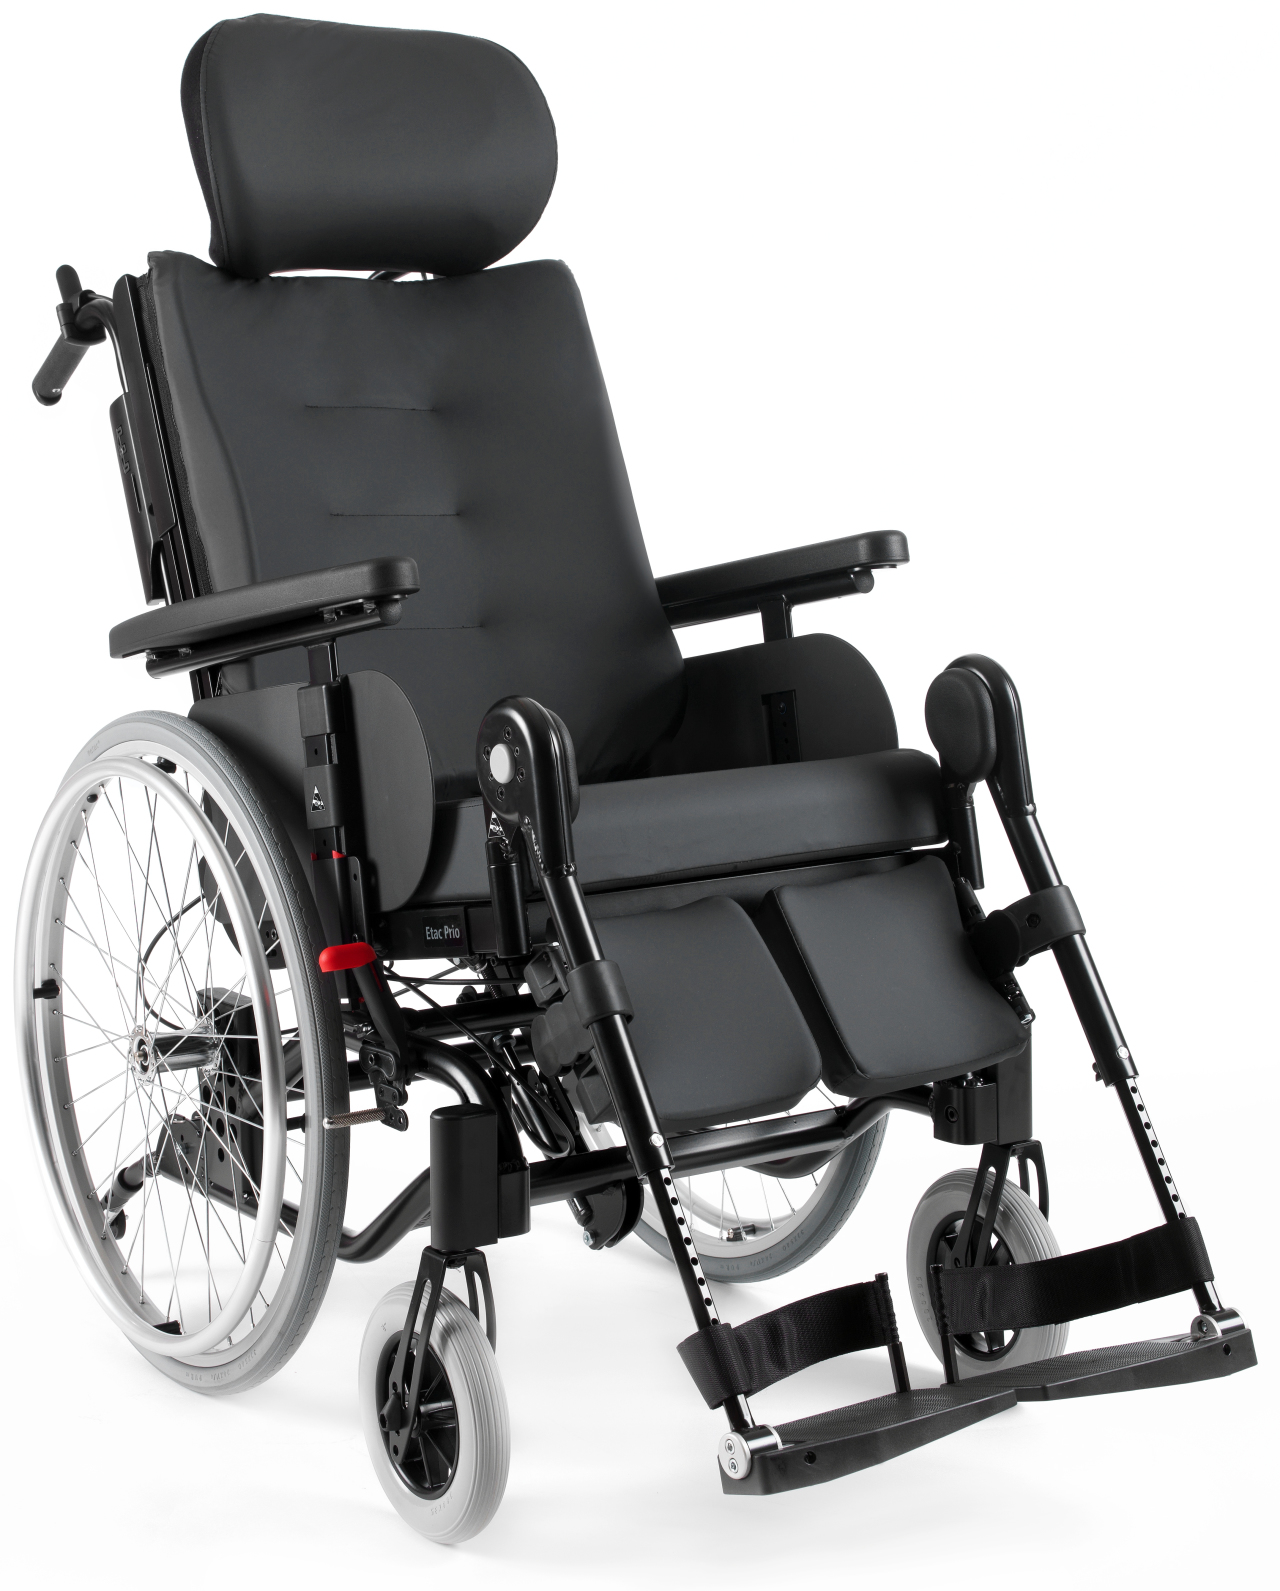 Etac Prio multi-functional wheelchair